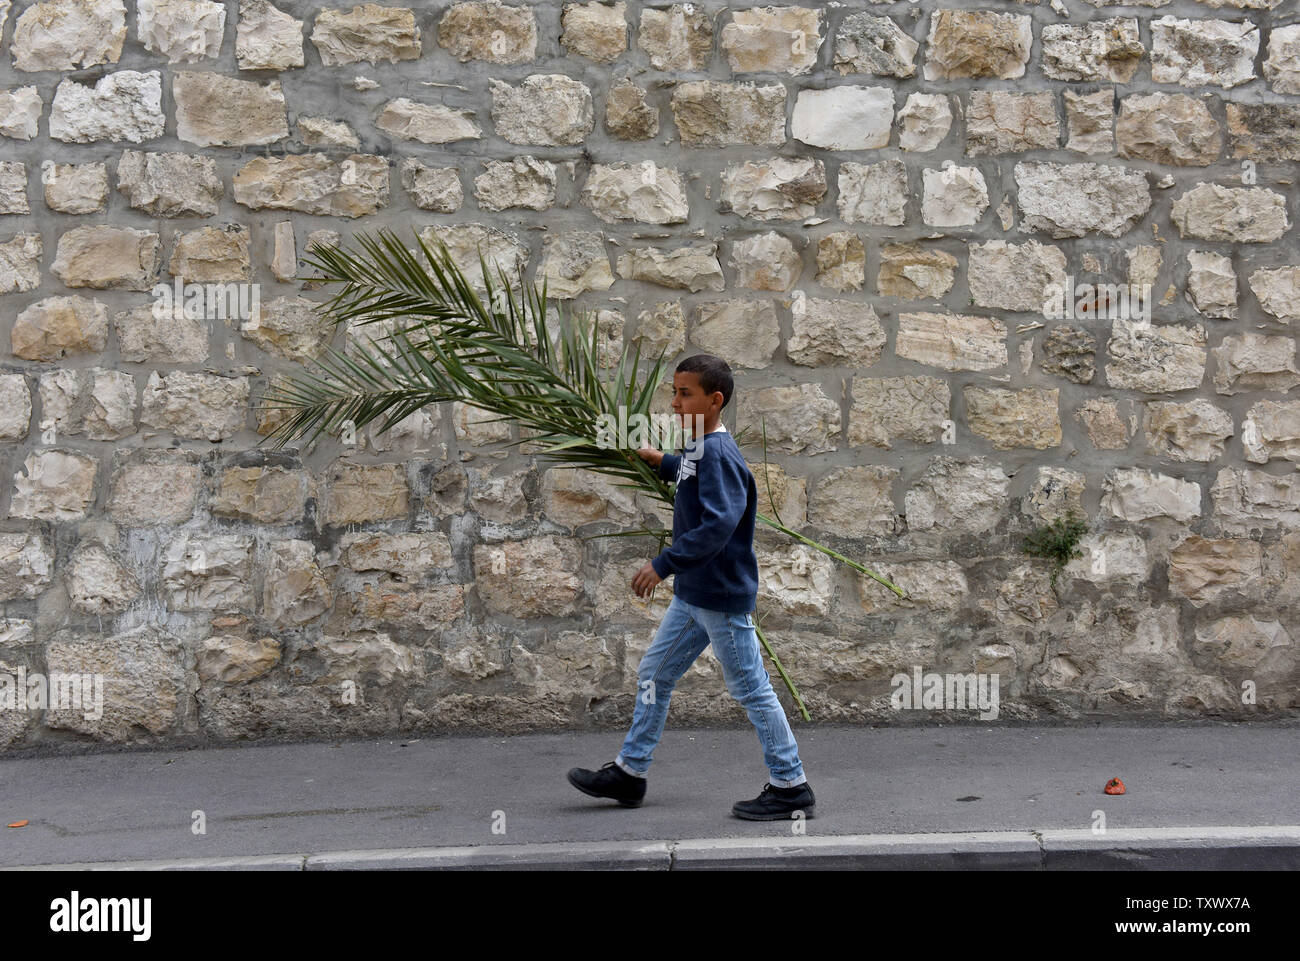 A Palestinian boy carries palm branches to sell to pilgrims